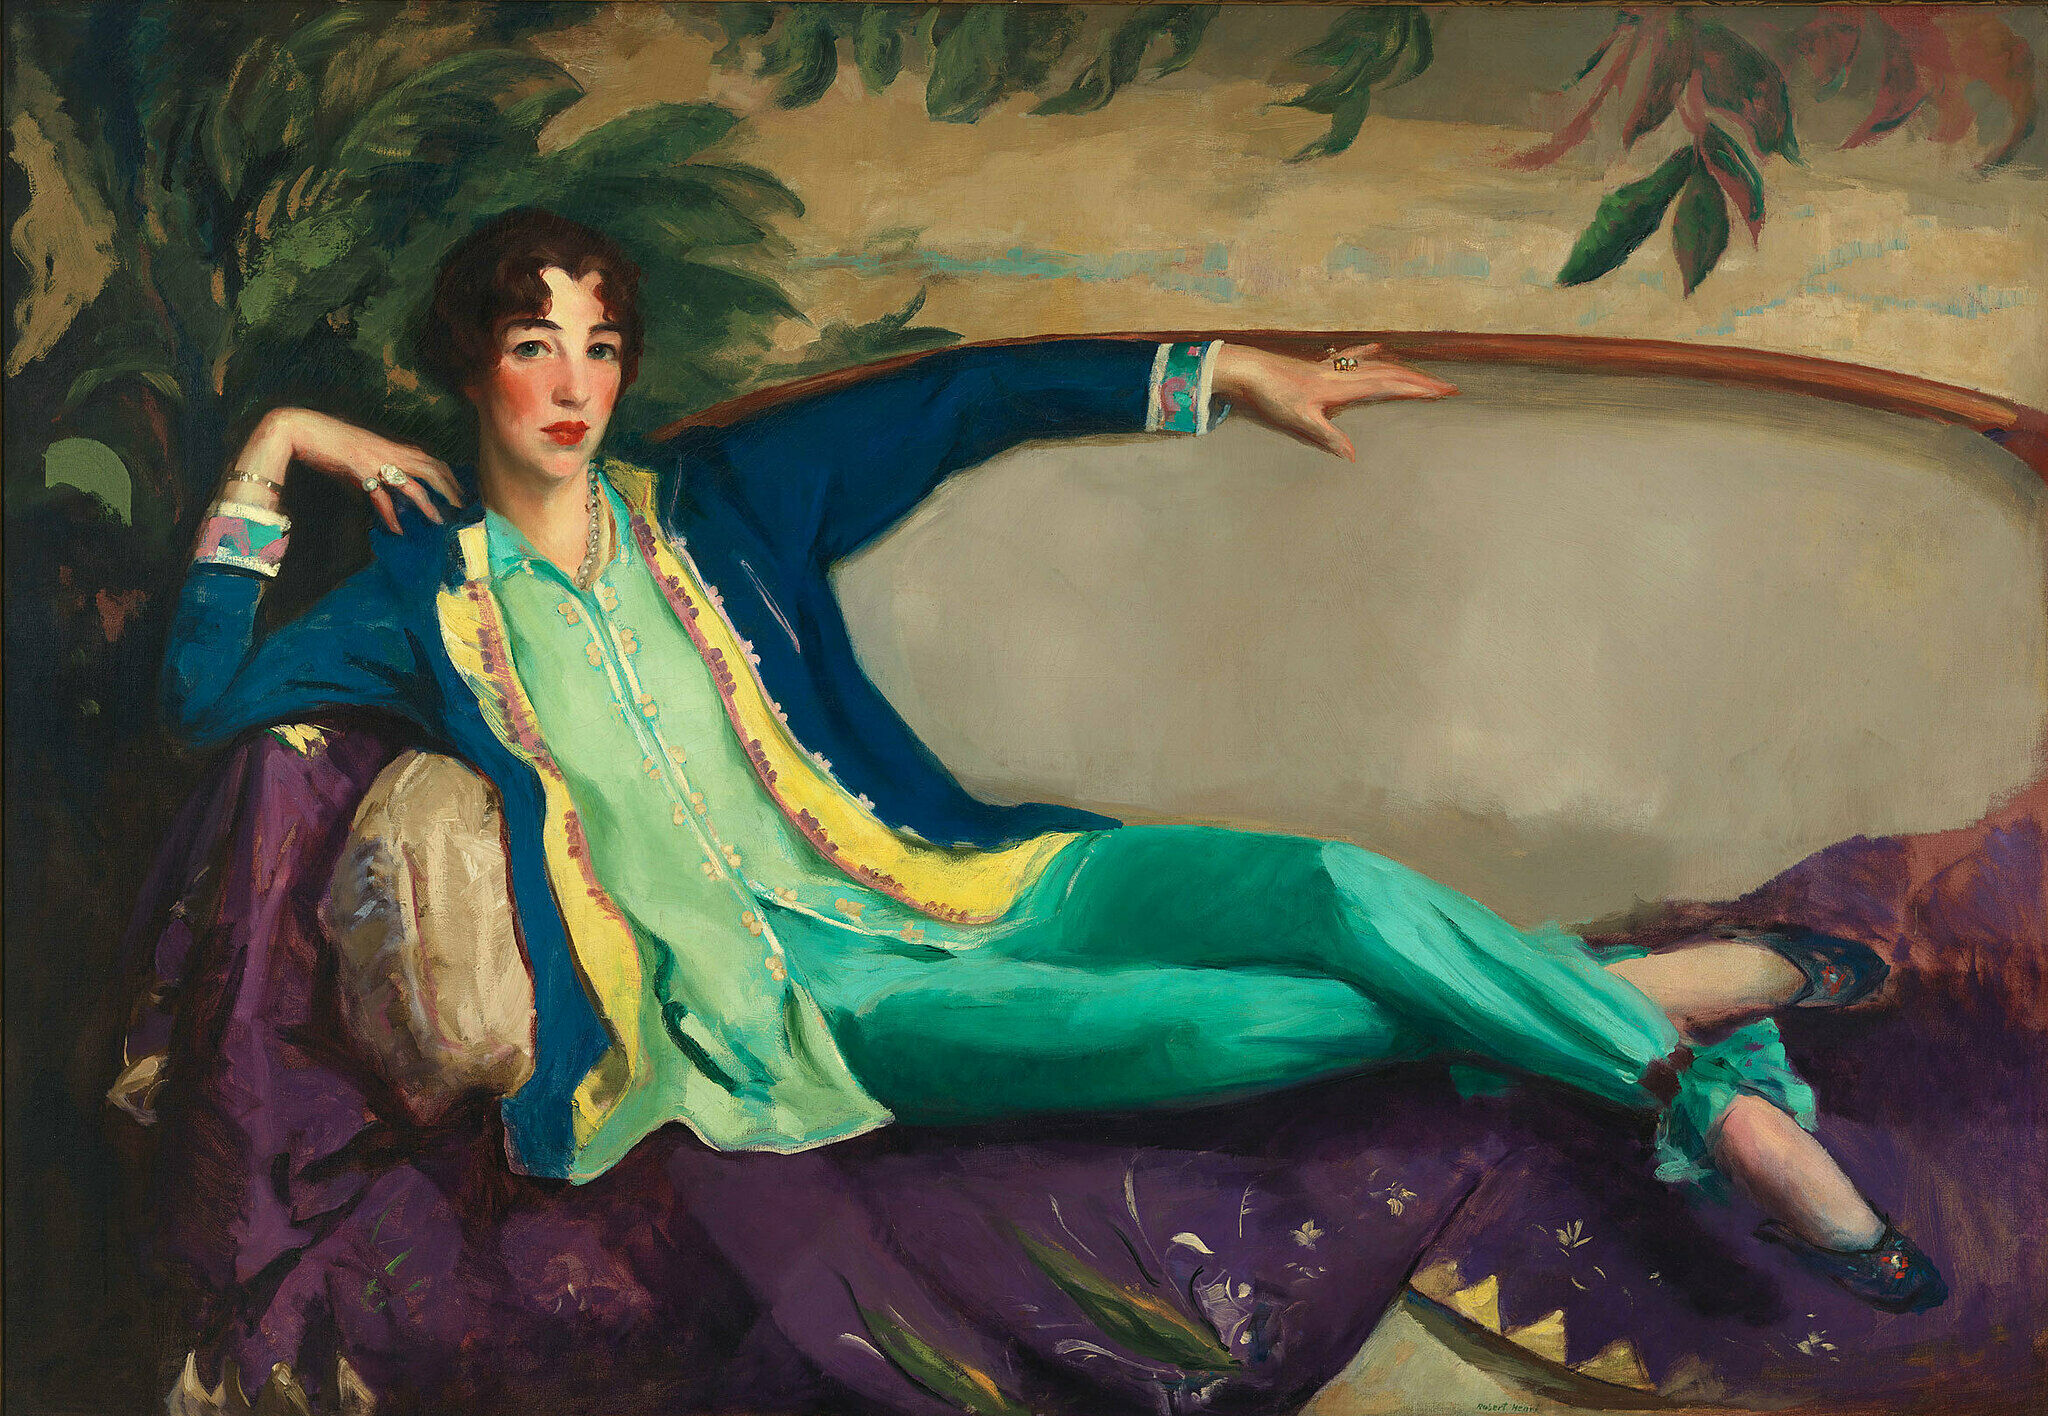 A portrait of Gertrude Vanderbilt Whitney lounging on a couch.